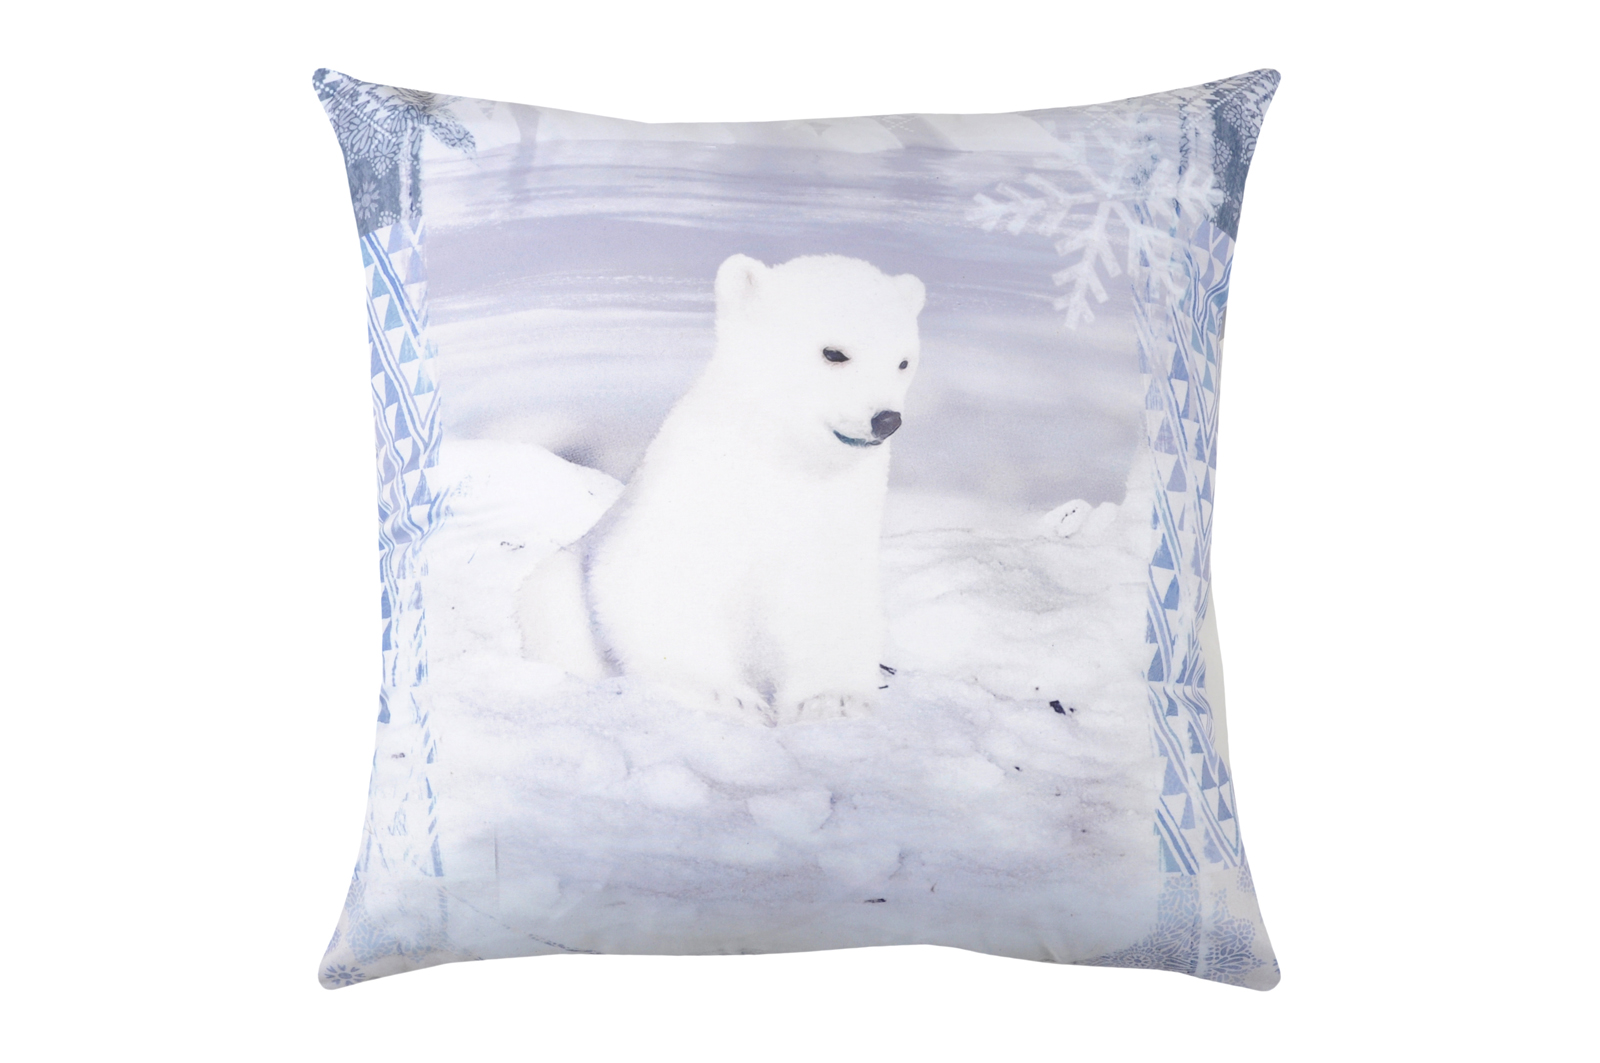 Coussin Blanc Ourson Blanc 40x40cm Ourson Winty 40x40cm Coussin 8knOX0wP